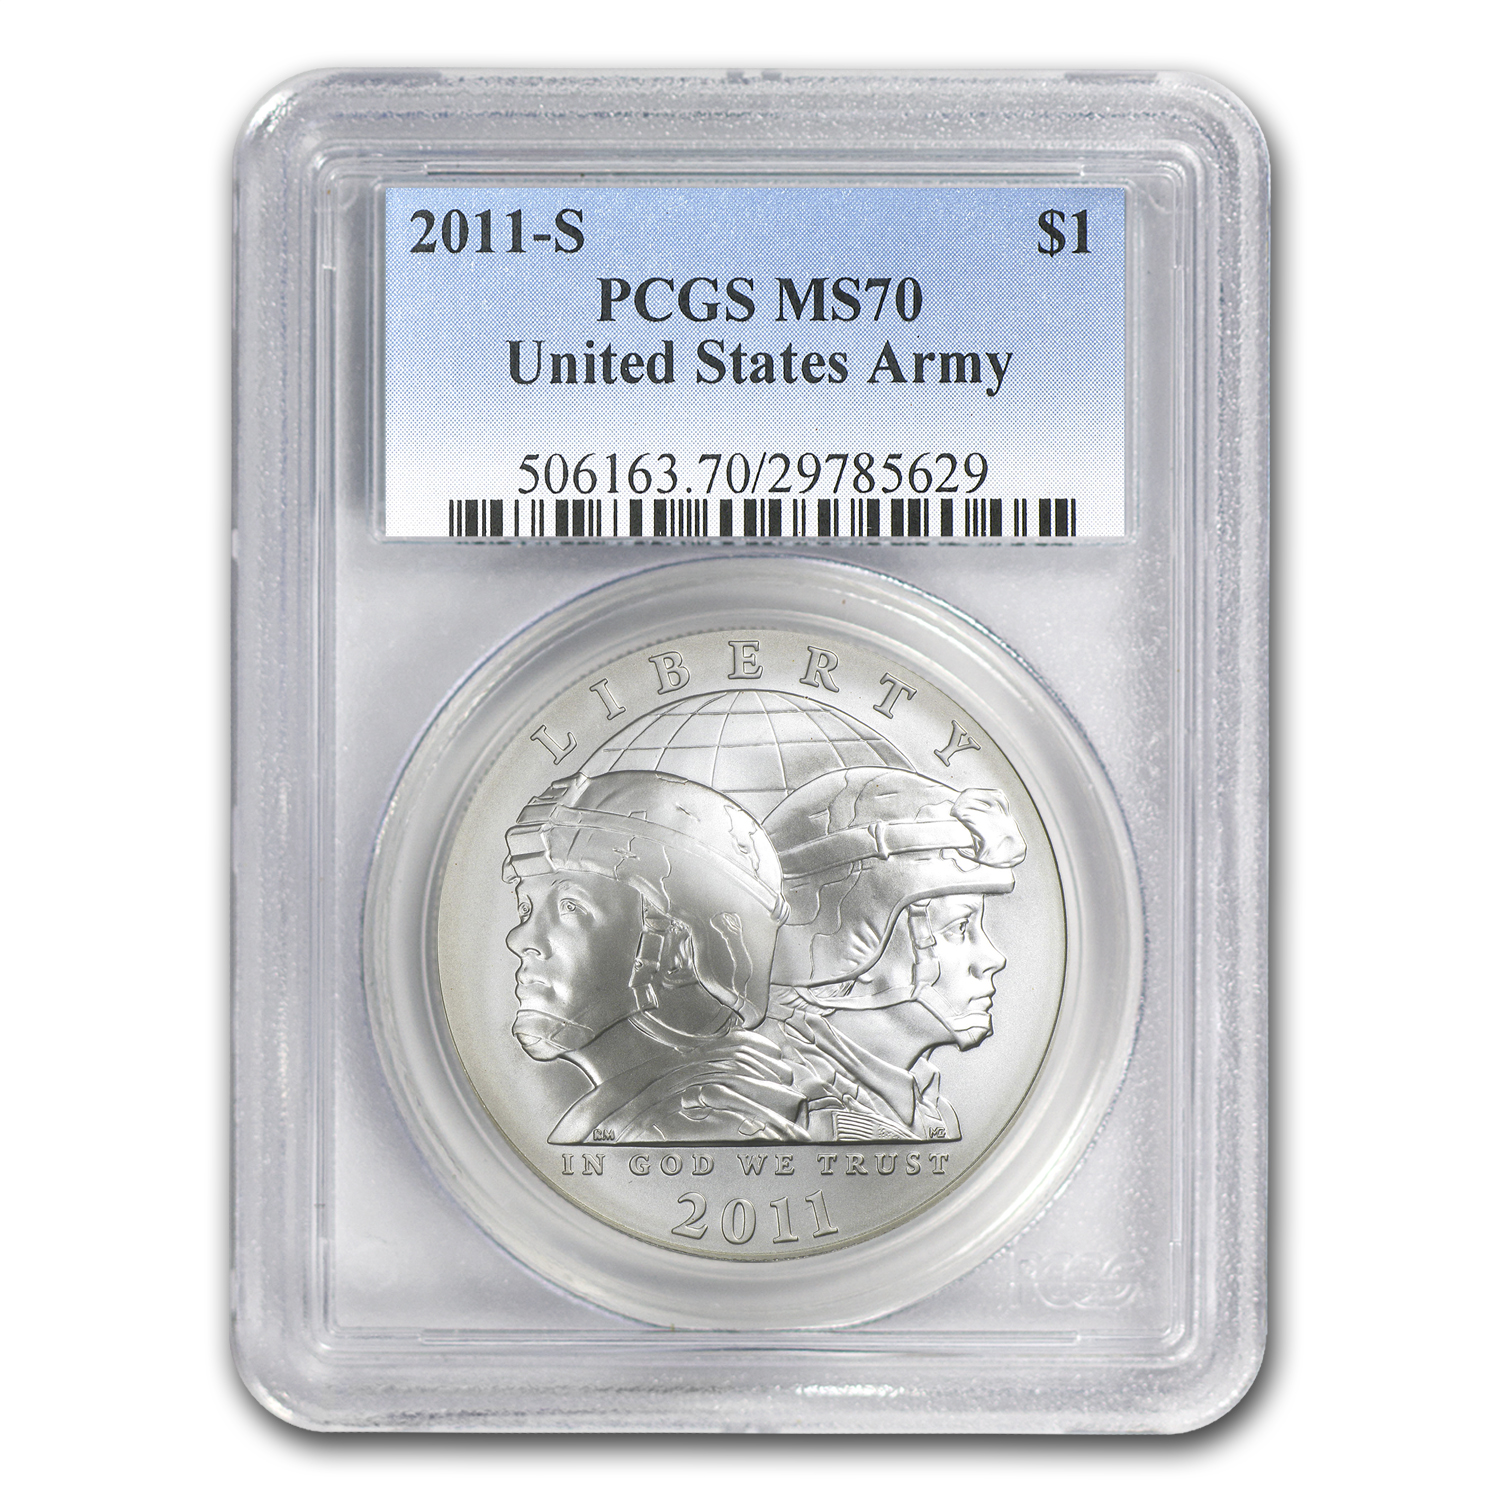 2011-S United States Army $1 Silver Commemorative MS-70 PCGS